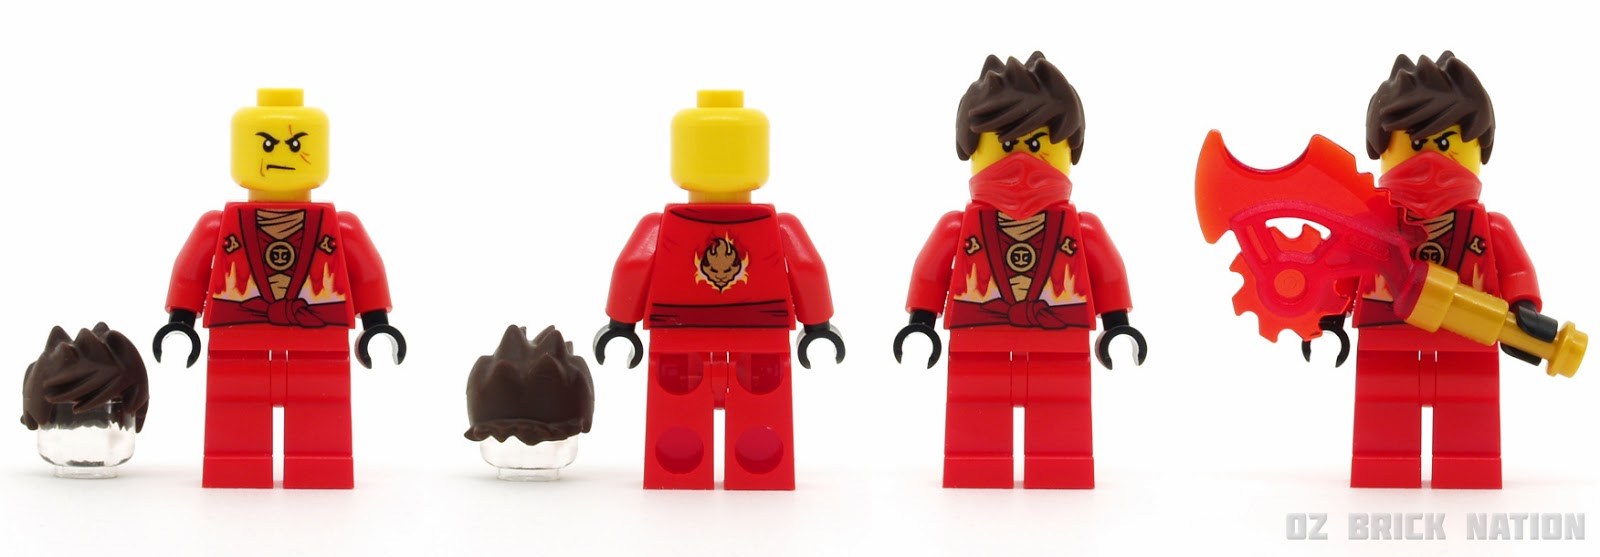 the gallery for gt ninjago cole rebooted